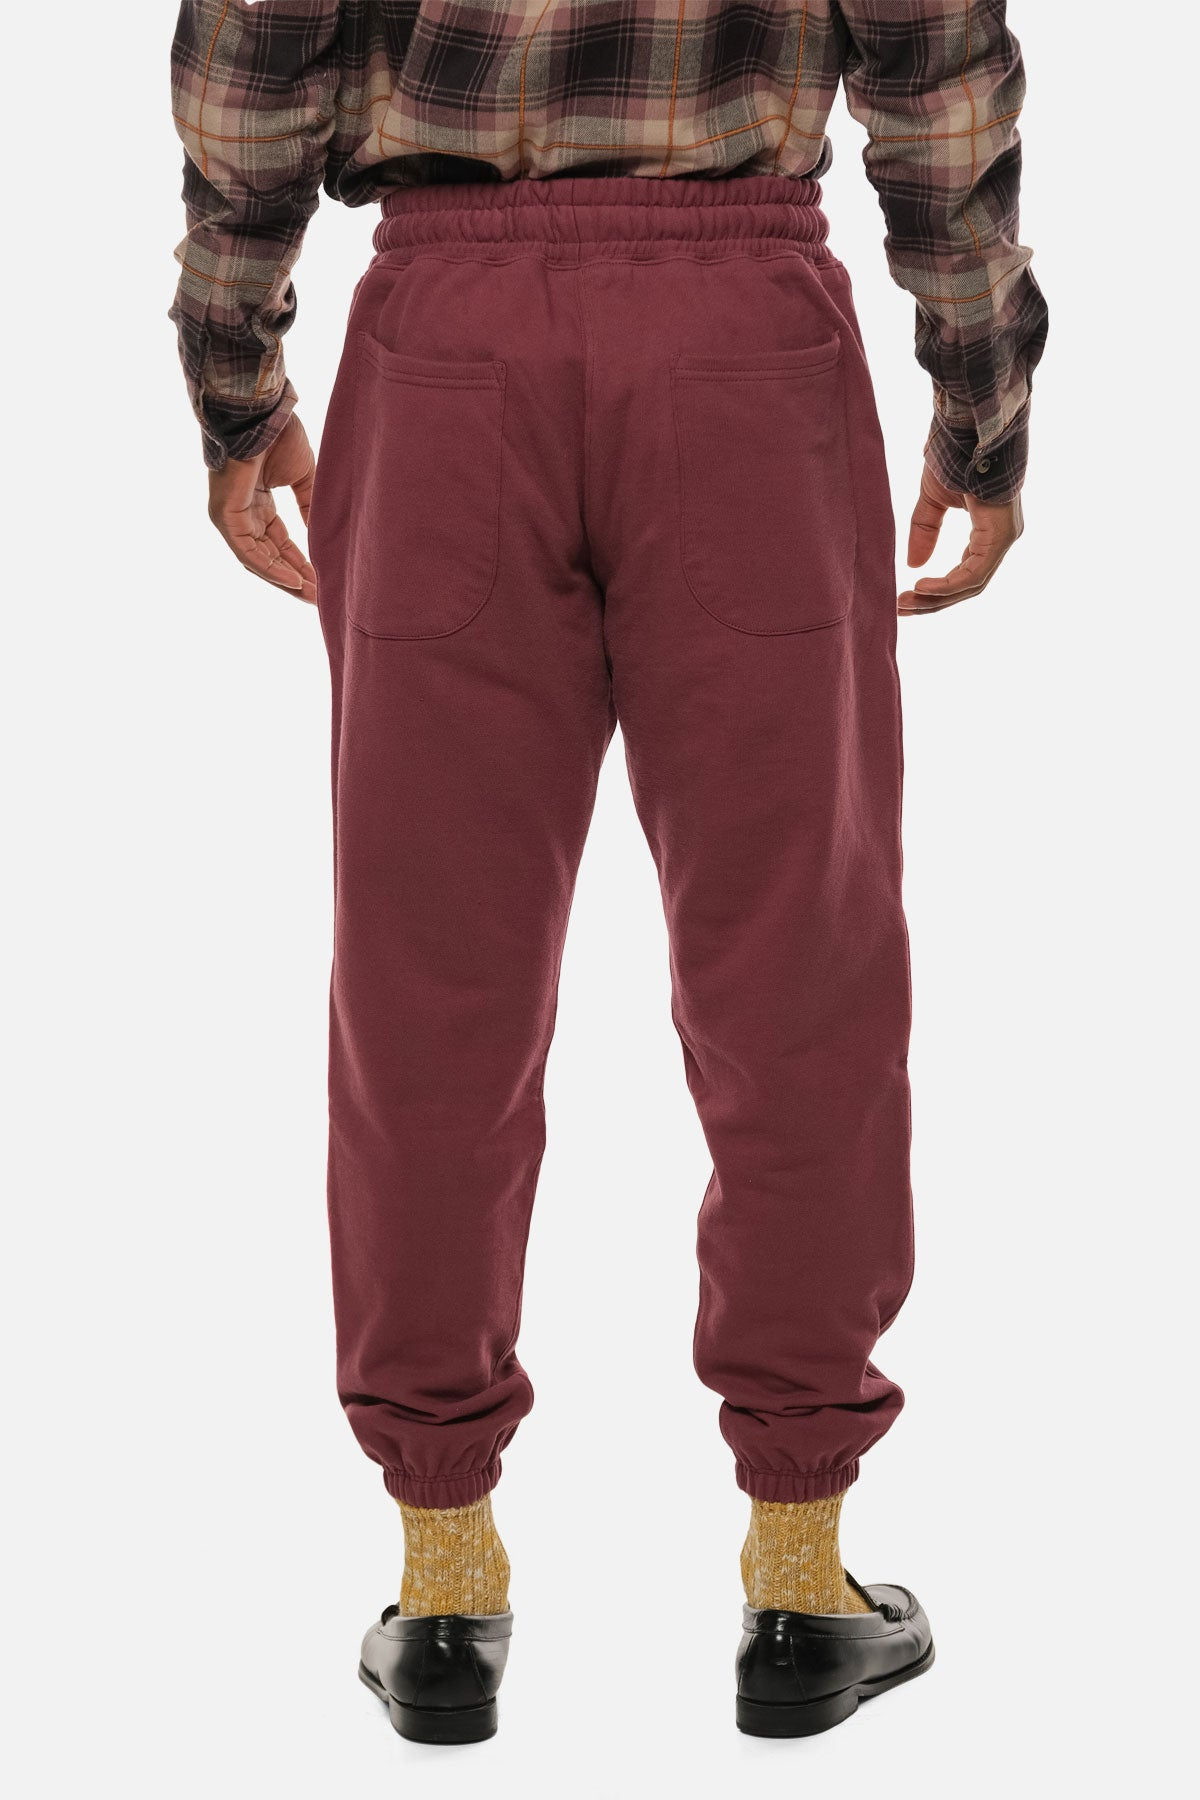 MORTON AVE PANT IN CRIMSON - Fortune Goods